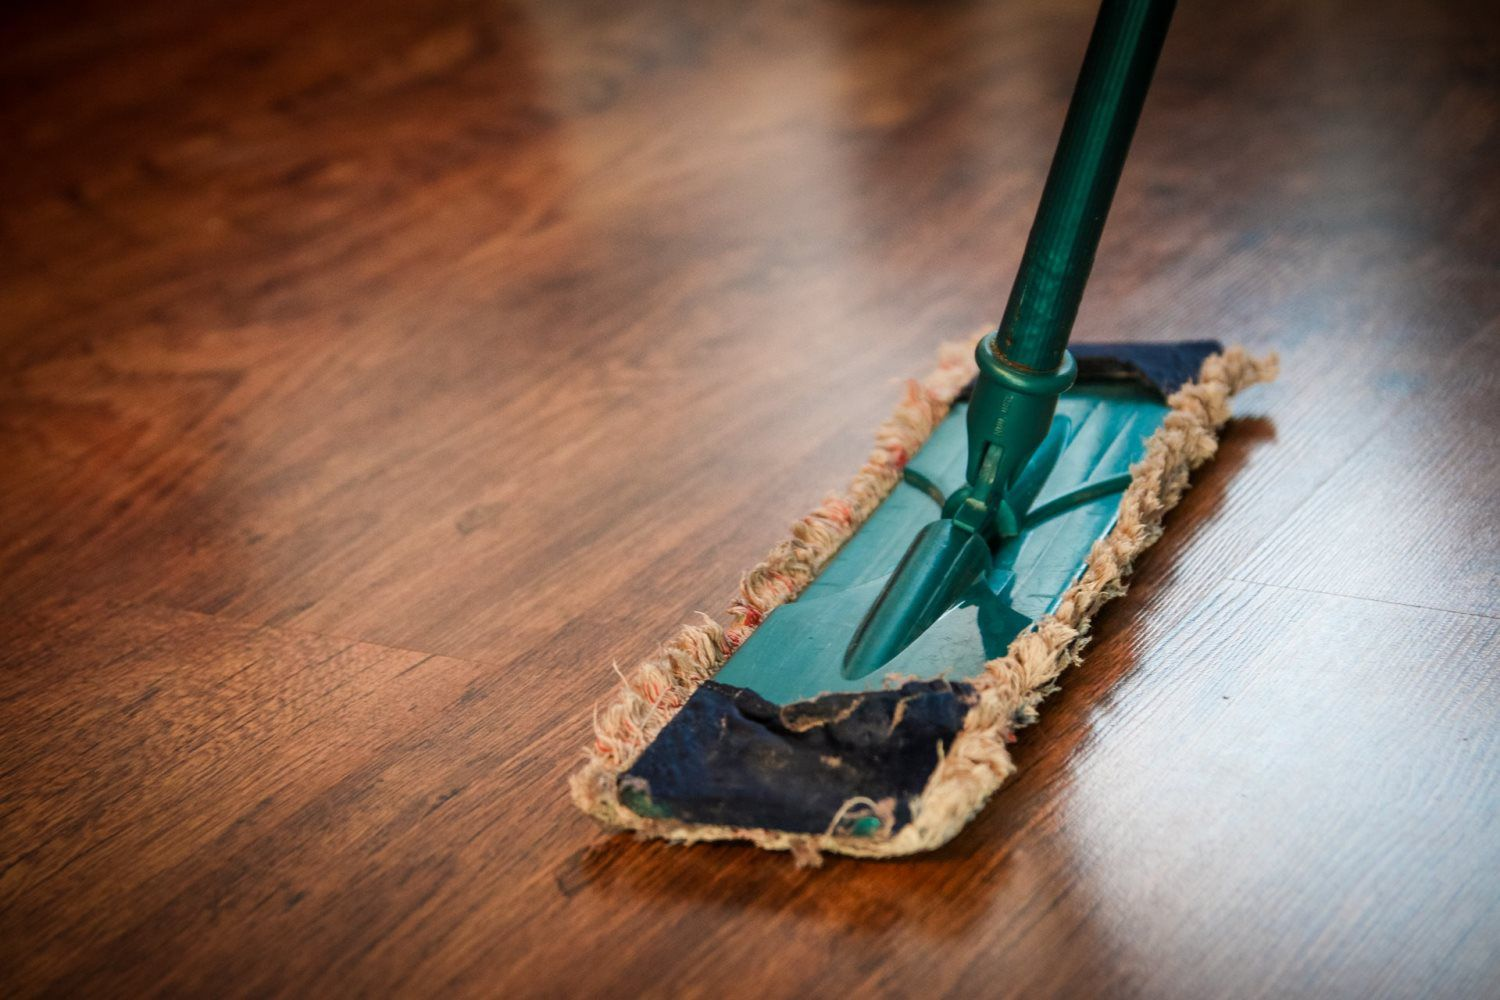 floor cleaning service in austin texas